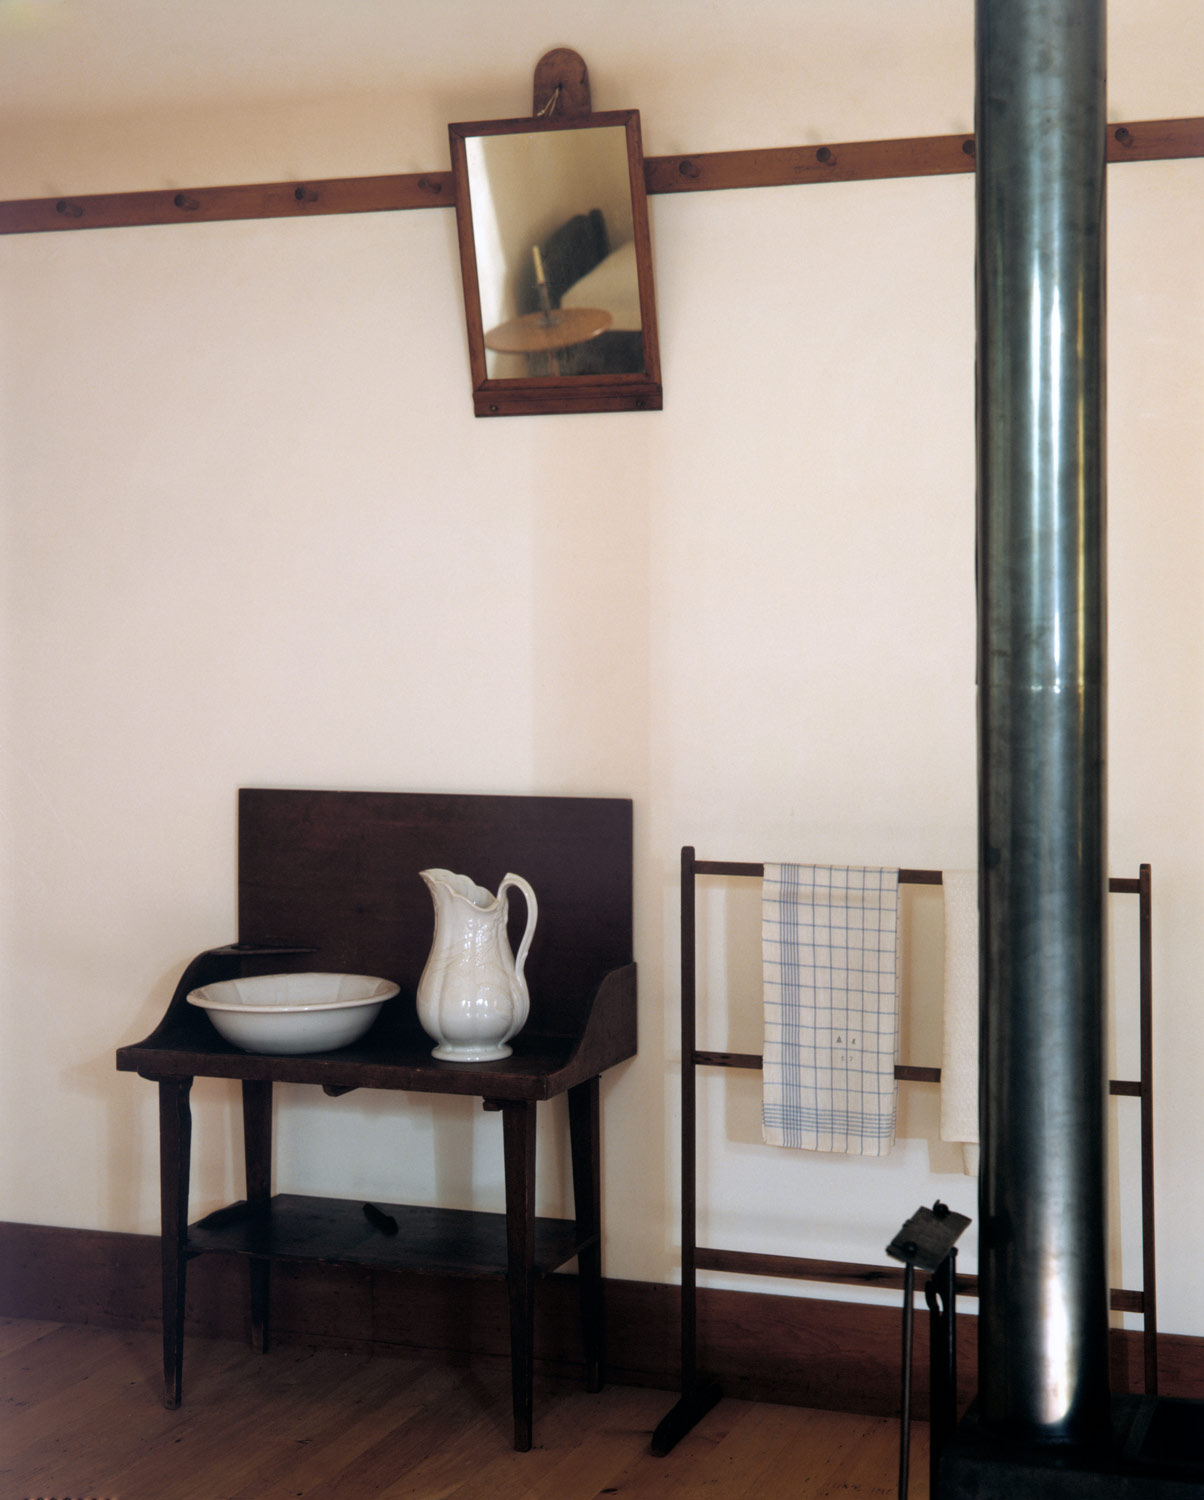 Architectural Elements From North Family Dwelling New Lebanon York